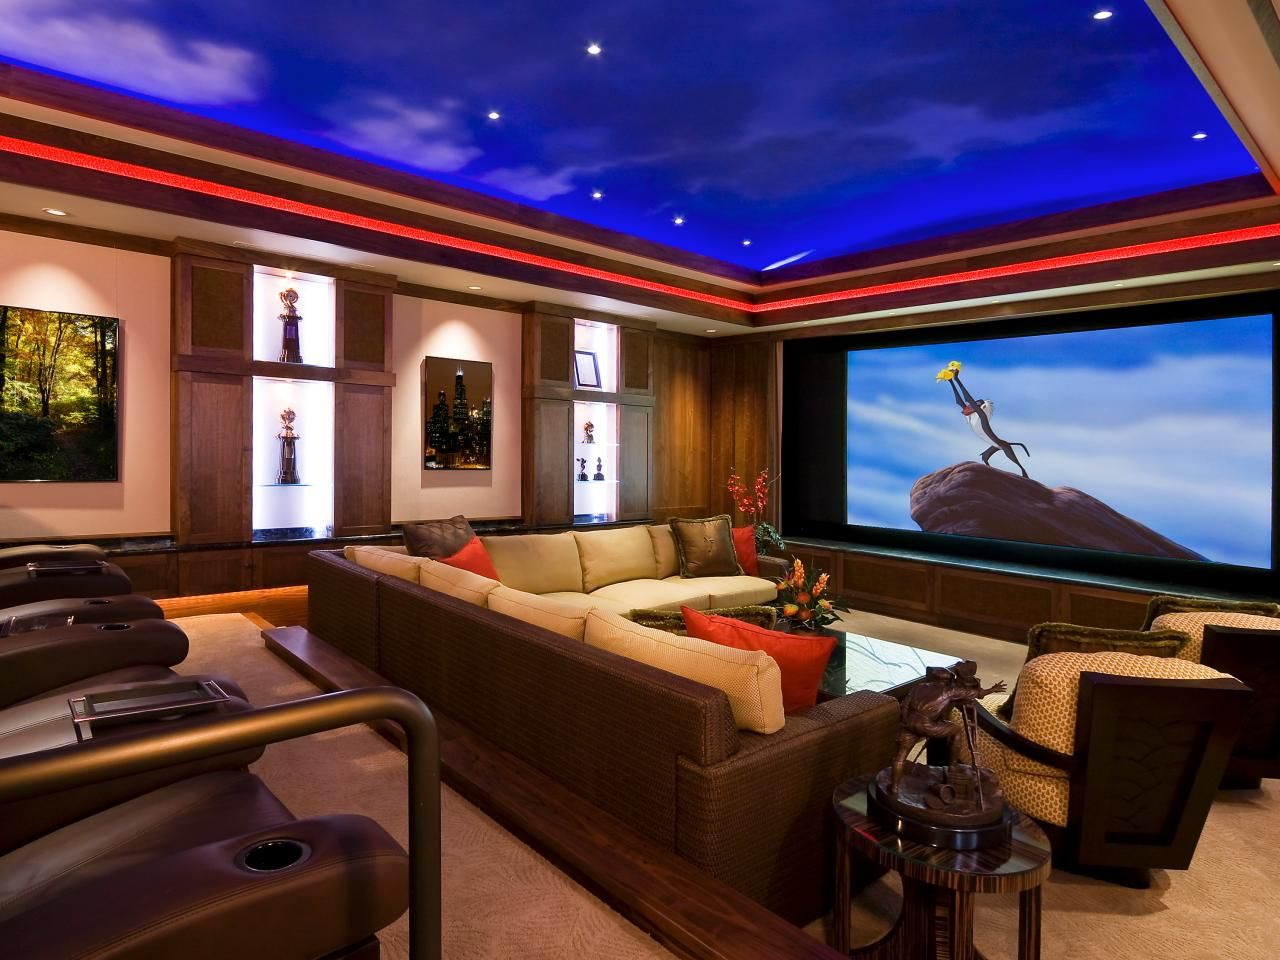 Choosing a Room for a Home Theater | Theatre design, Hgtv and ...